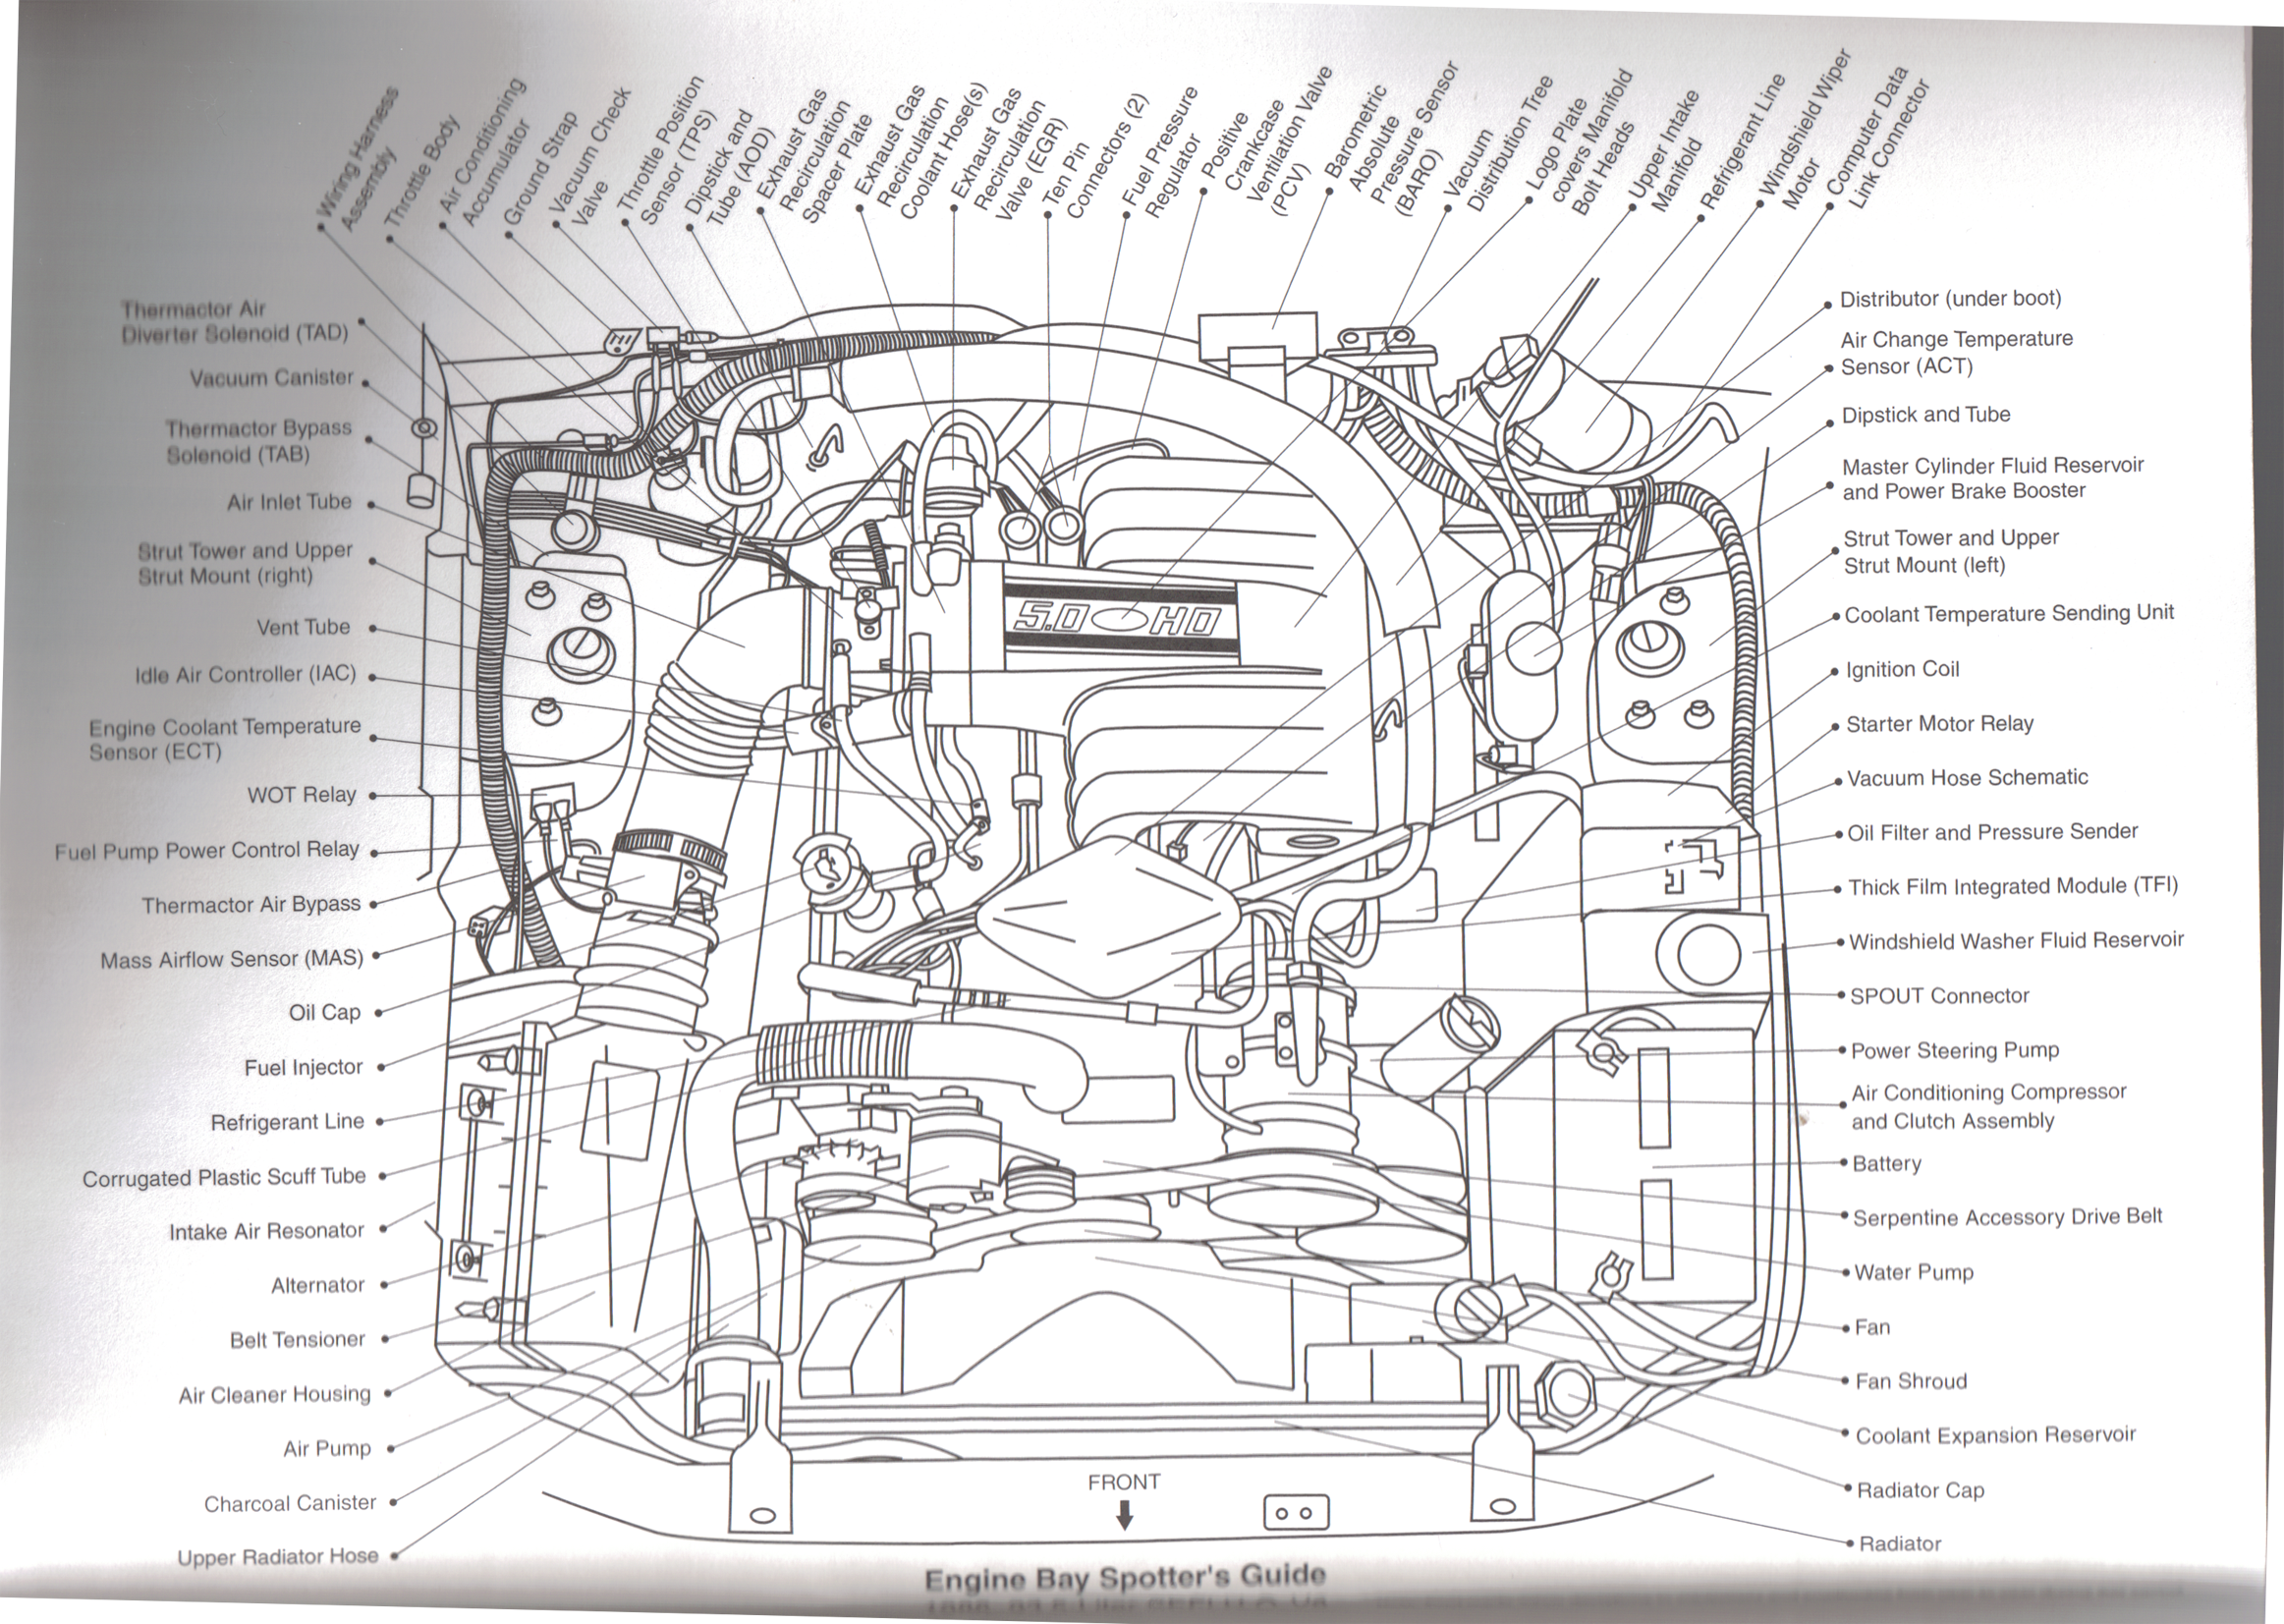 1989 Ford Ranger Engine Diagram Wiring Library 2000 F 150 4 6l V8 Coolant Temp Sencer 1987 1993 Foxbody 50 Sefi Part